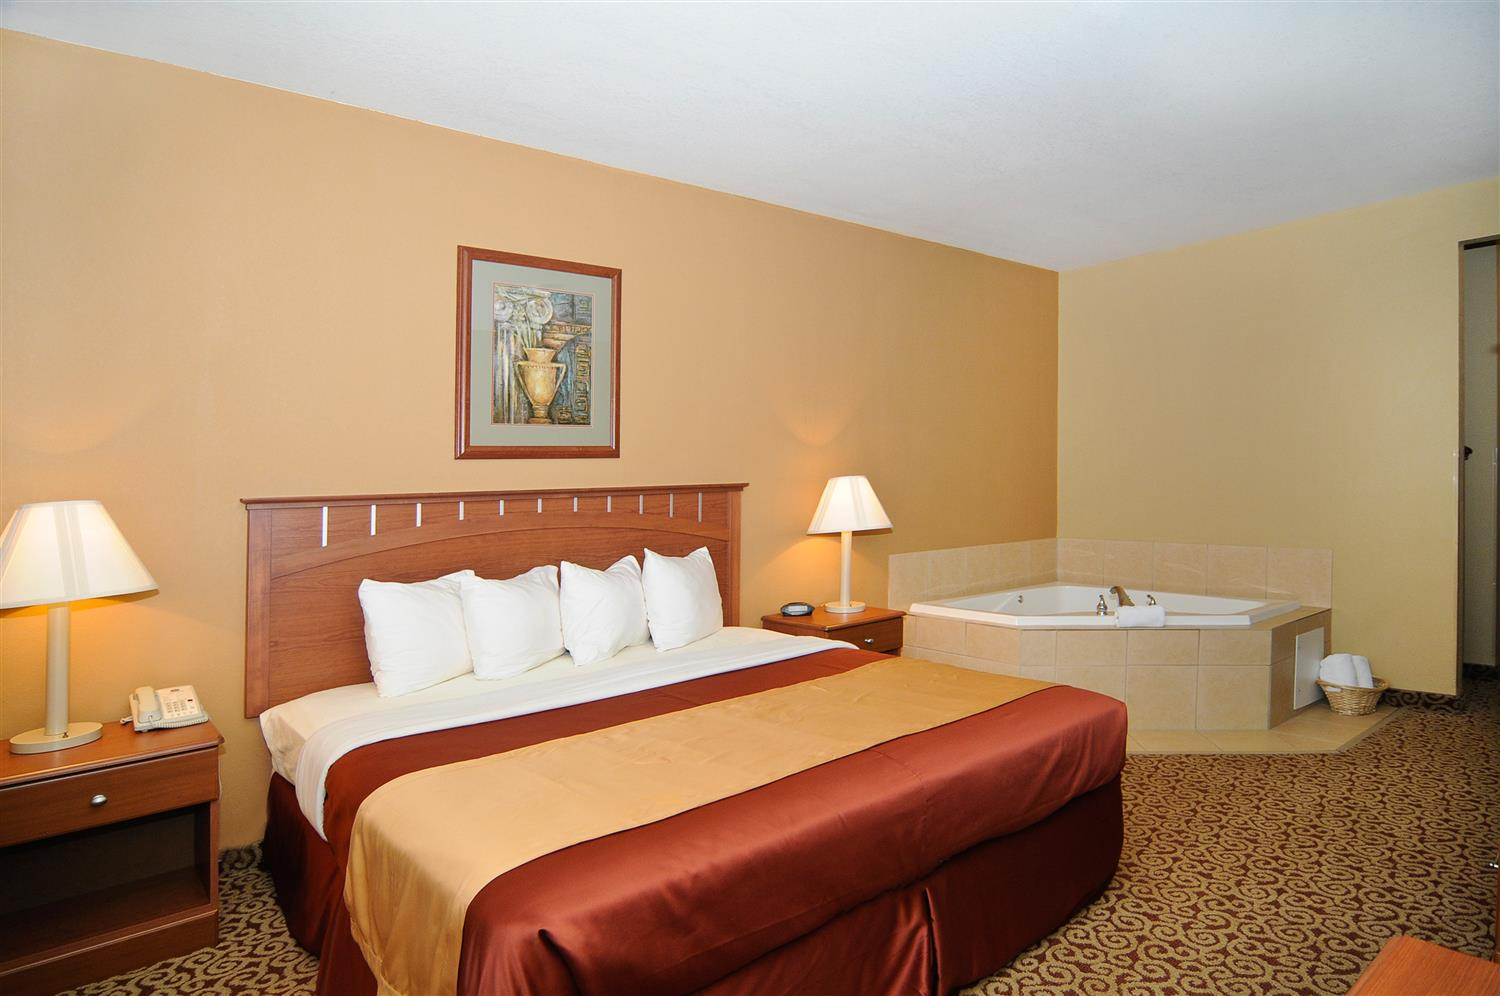 Enjoy A Getaway By Treating Yourself To Our One King Guest Room With An In Hot Tub